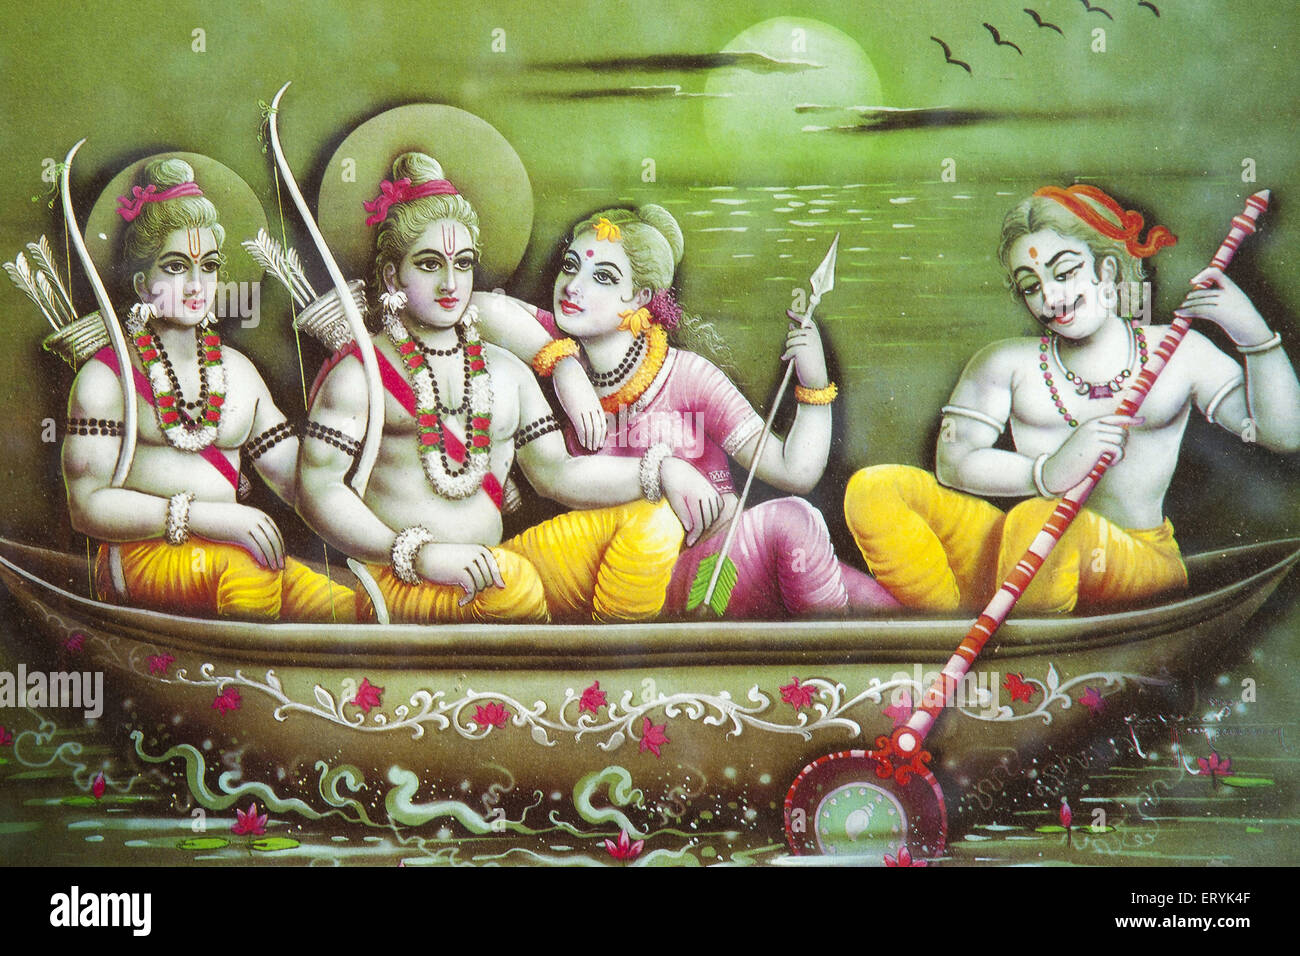 Painting Of Lord Ram Laxman And Sita In Boat India Stock Image